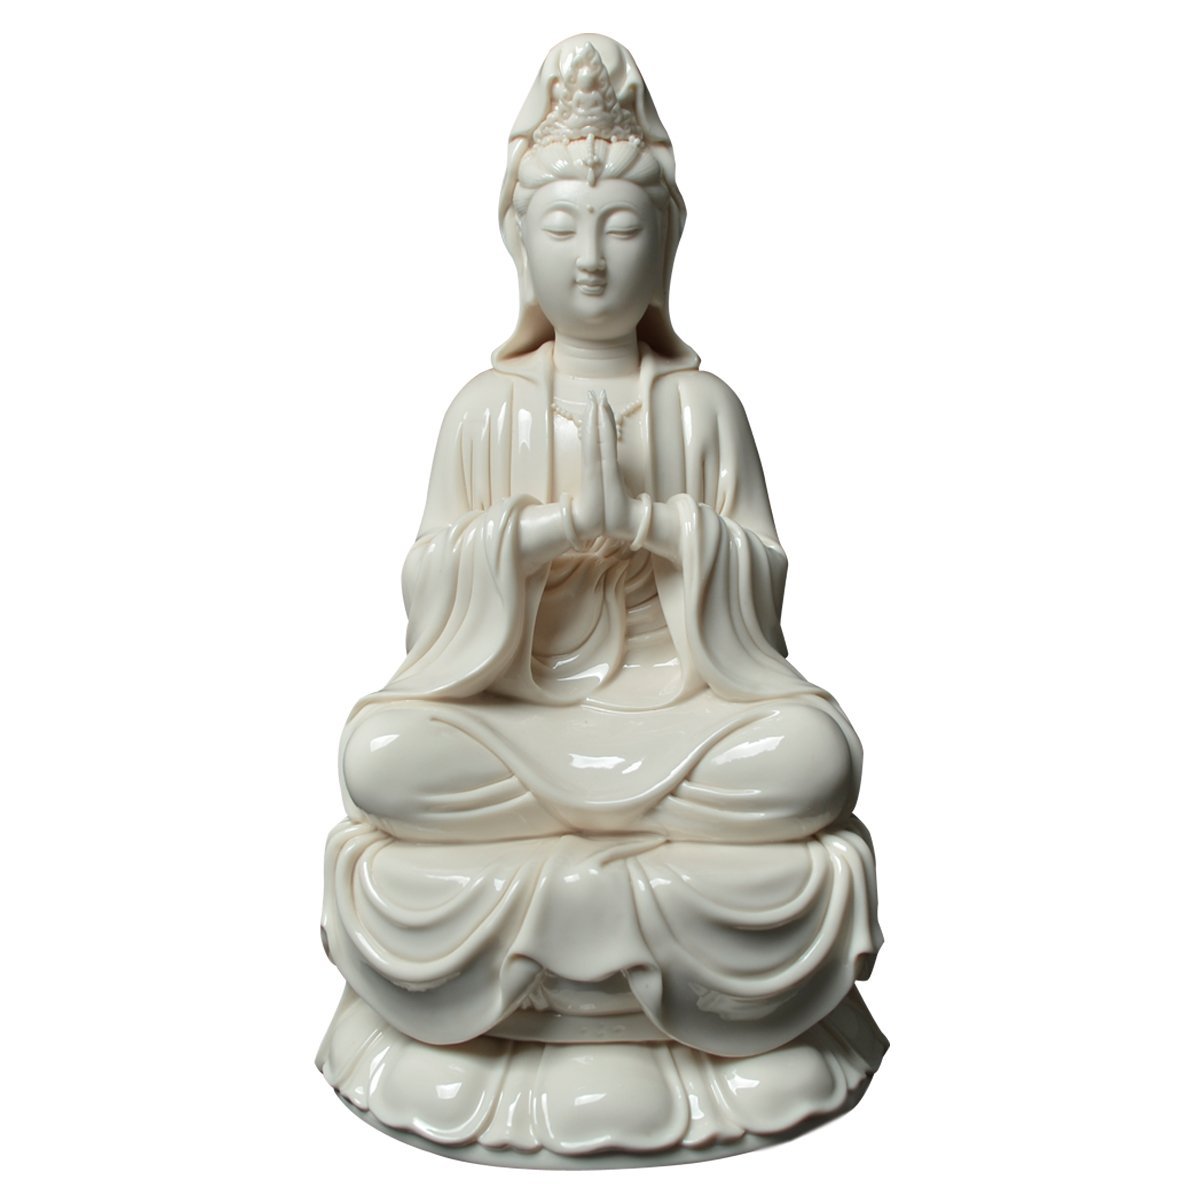 ICNBUYS Vintage Palm Godness Guanyin Buddha Statue Porcelain Home Decoration Height 12